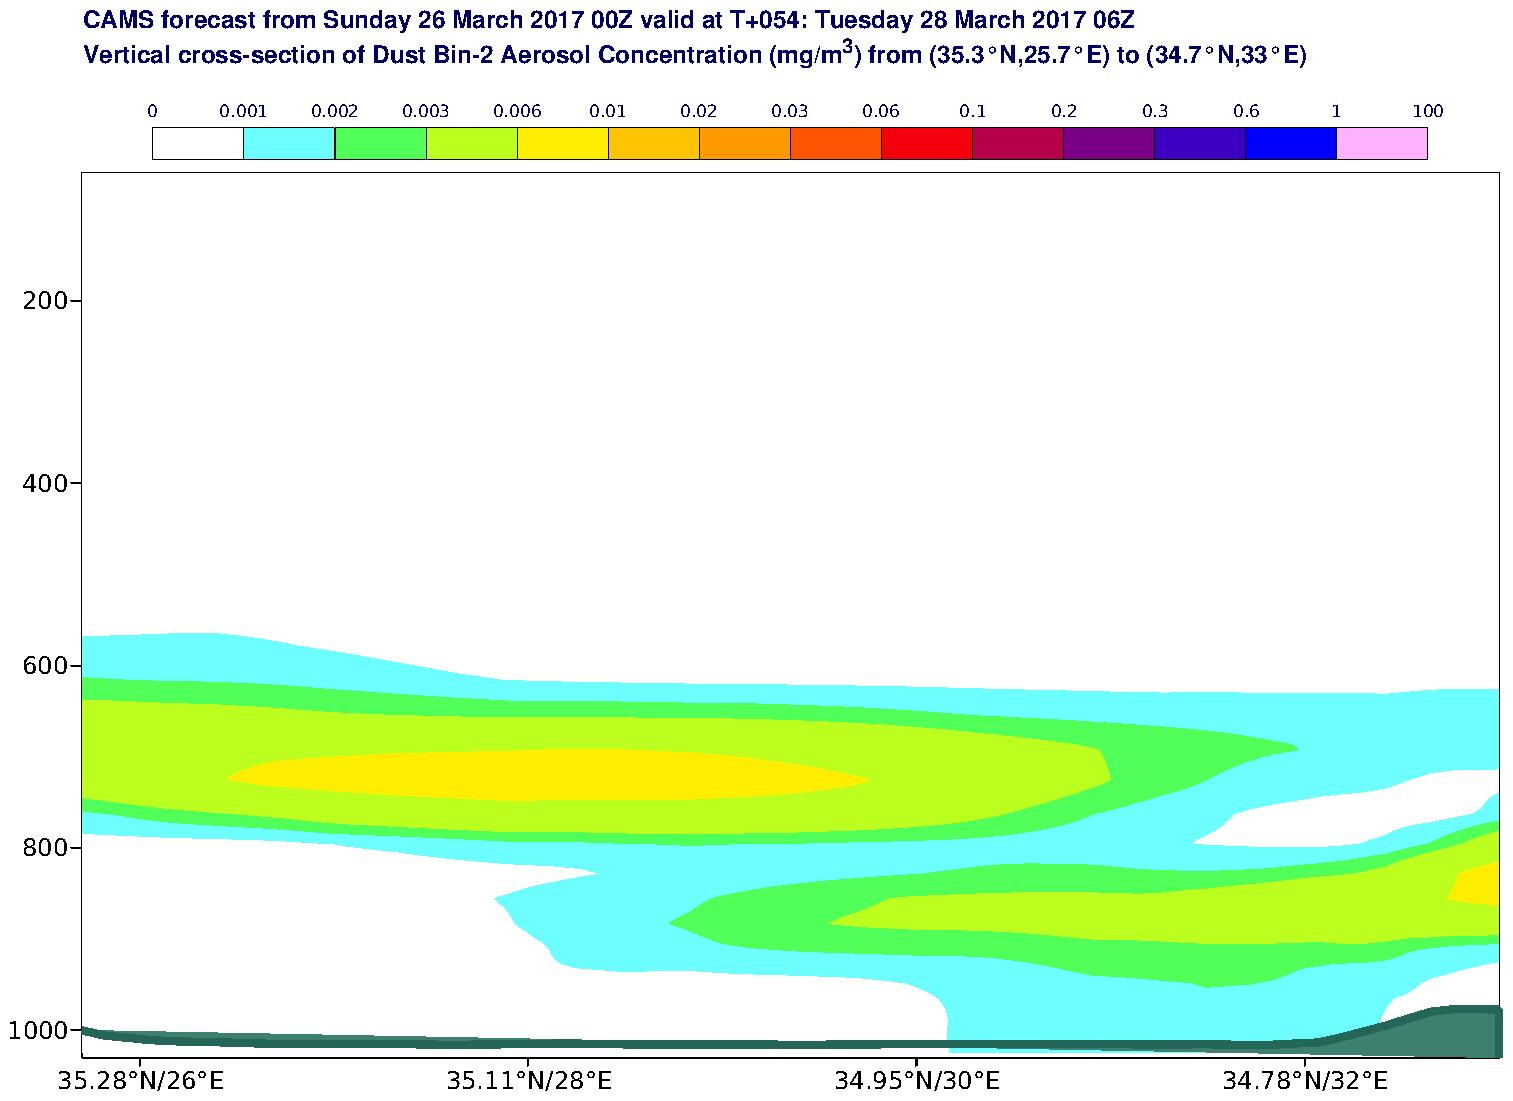 Vertical cross-section of Dust Bin-2 Aerosol Concentration (mg/m3) valid at T54 - 2017-03-28 06:00